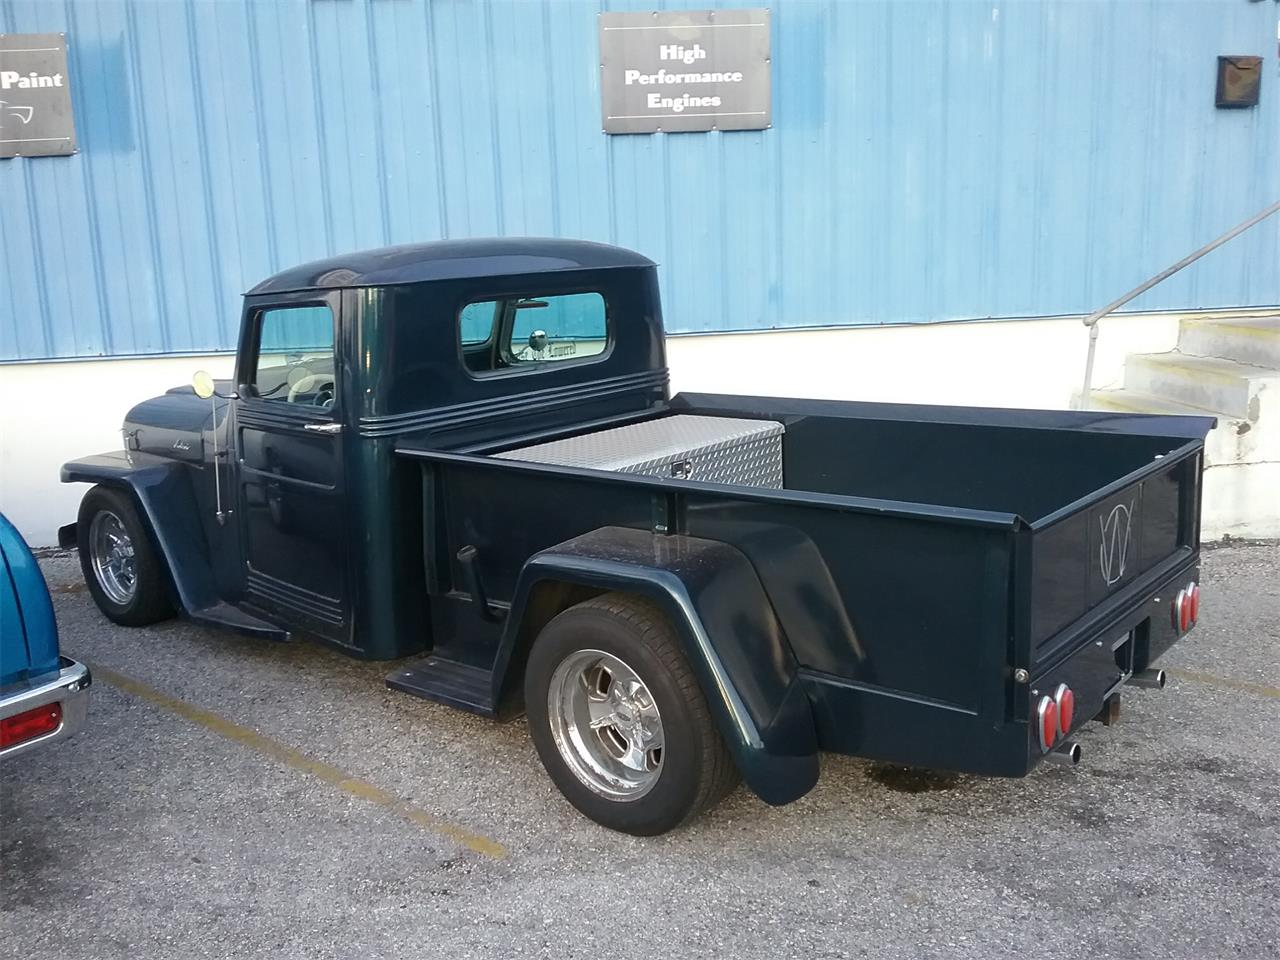 1952 Willys Pickup for sale in St. Petersburg, FL – photo 10